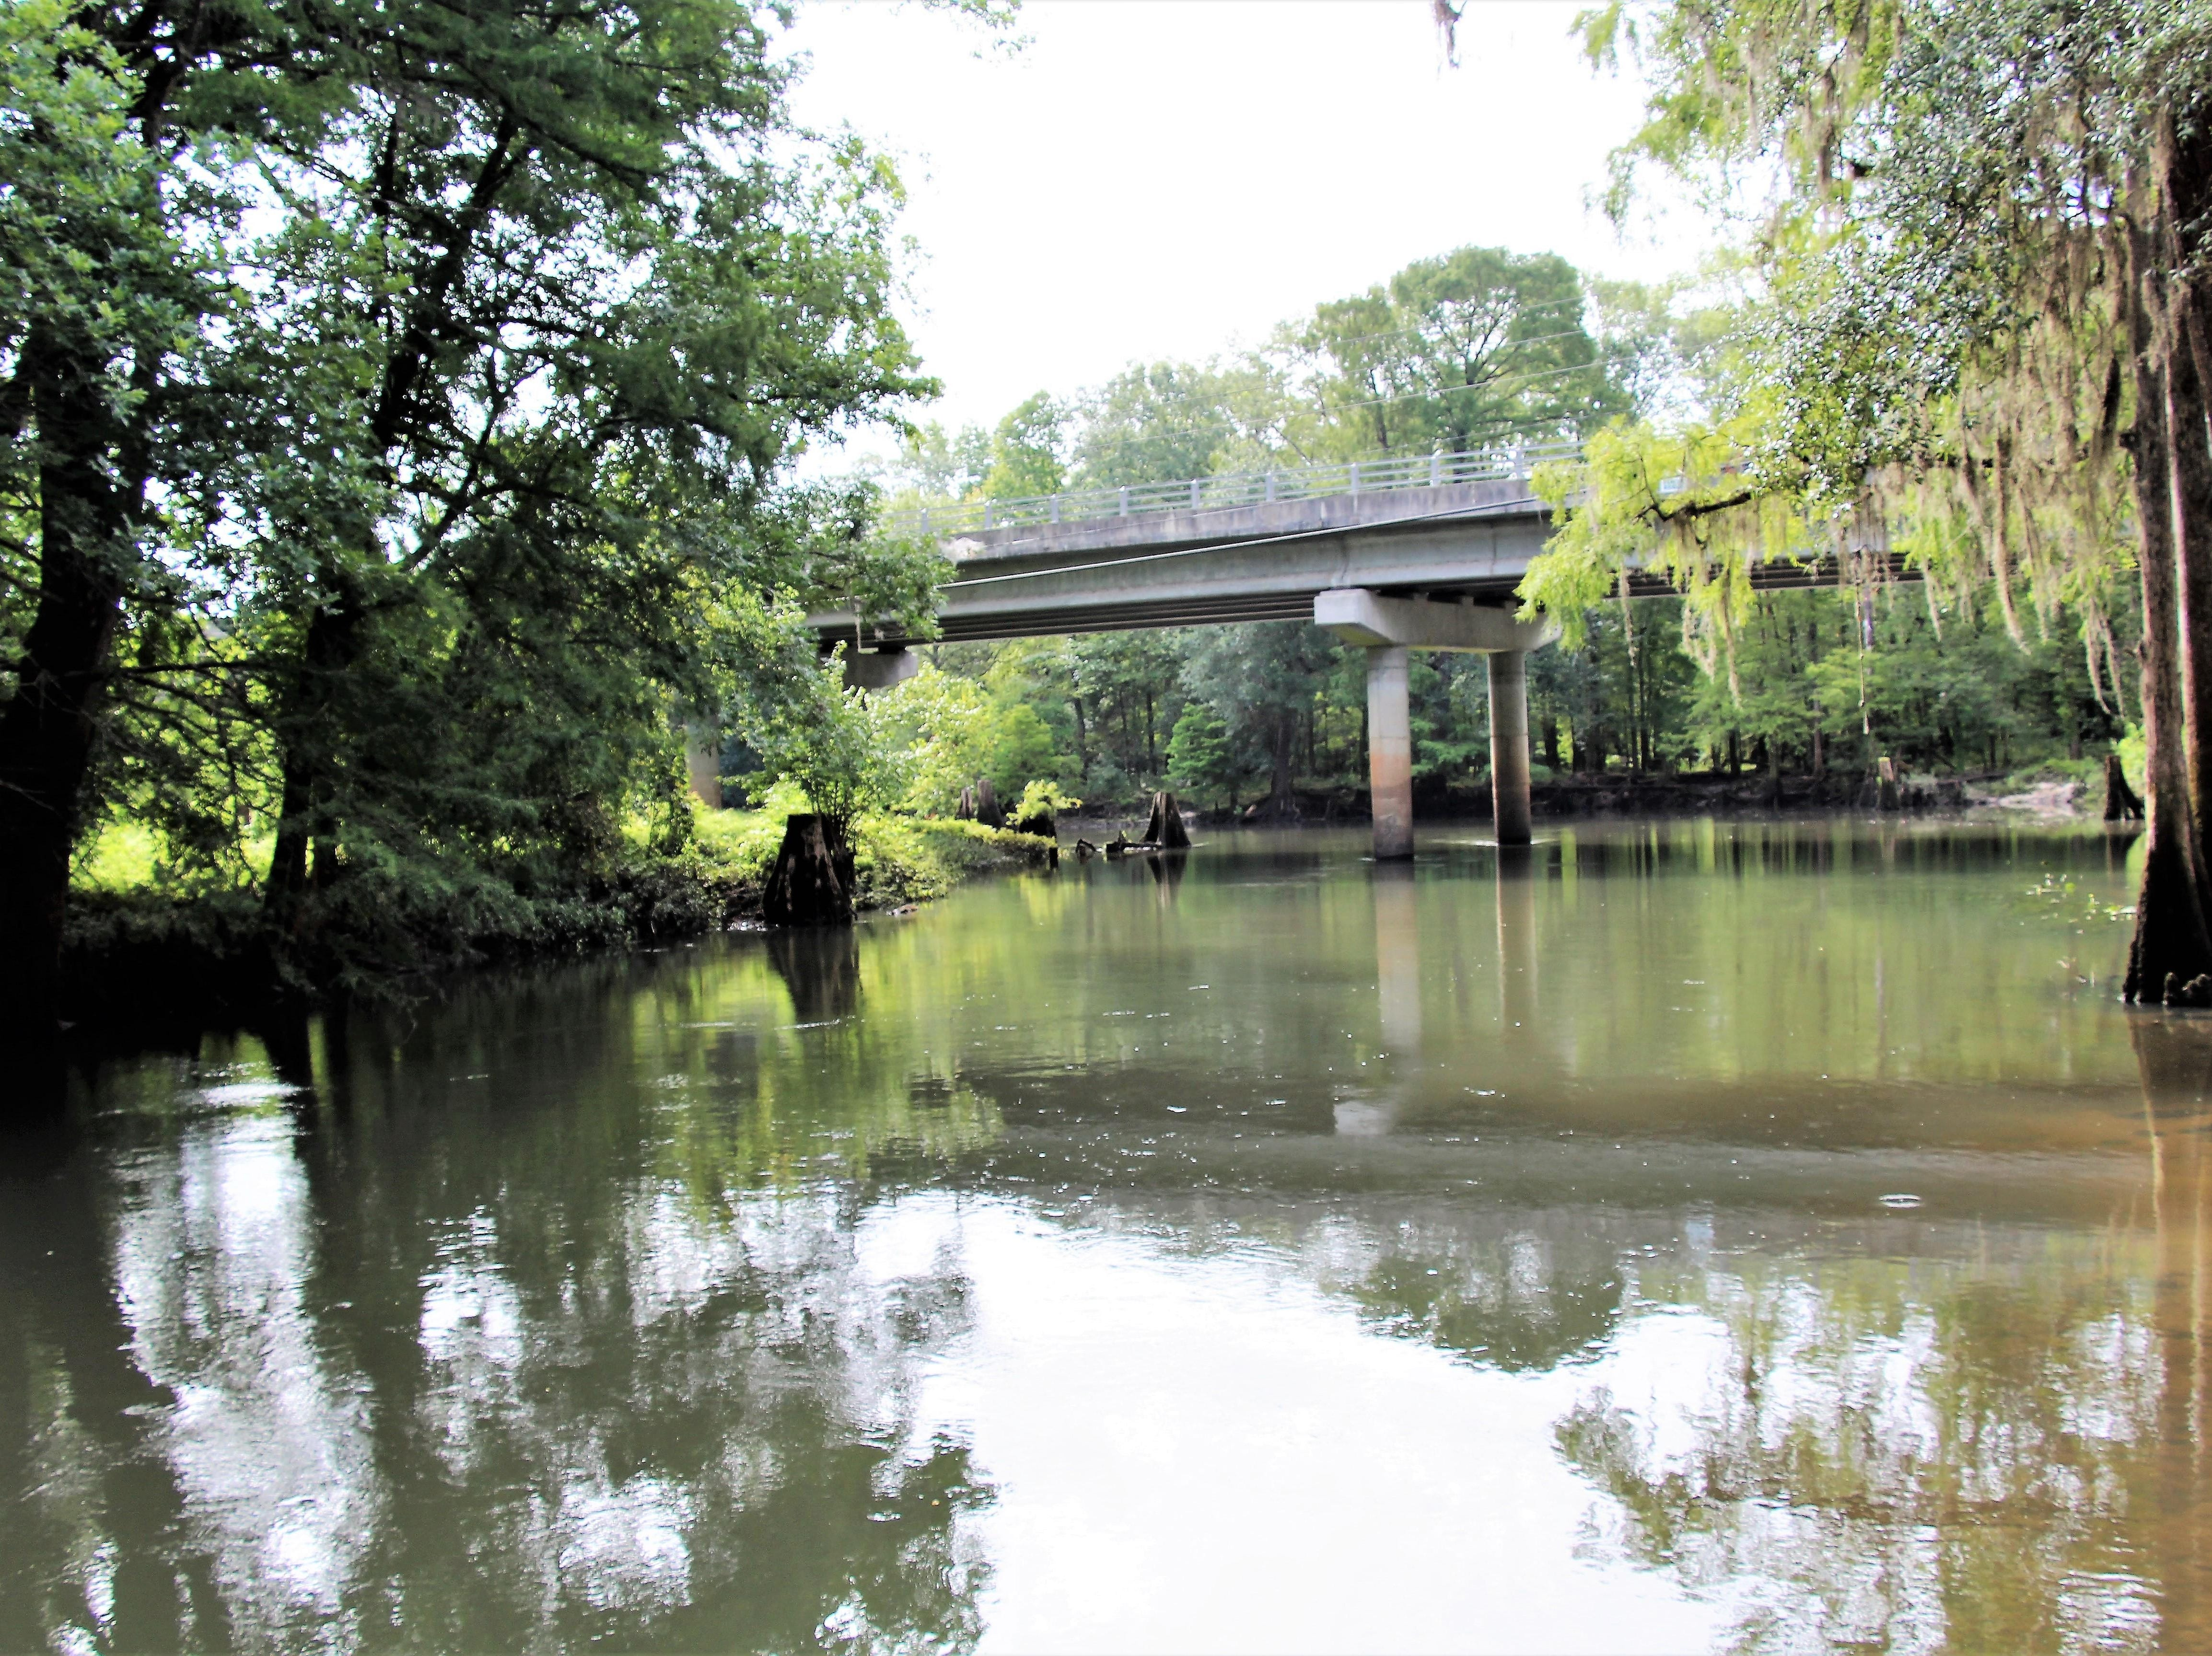 Yancey Bridge over the Chipola River in Marianna